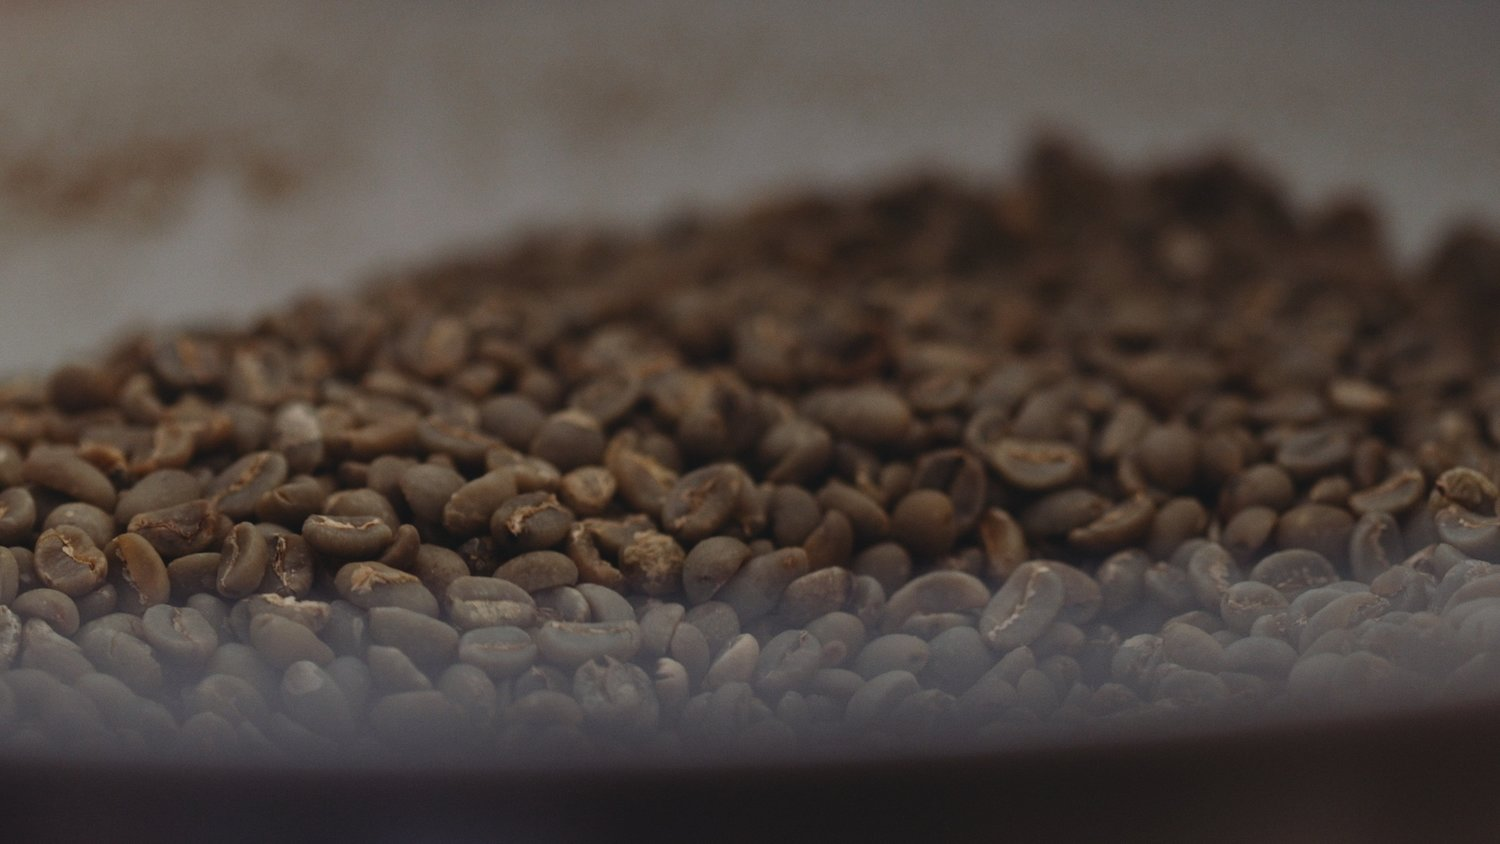 PRE-ROASTED COFFEE BEANS